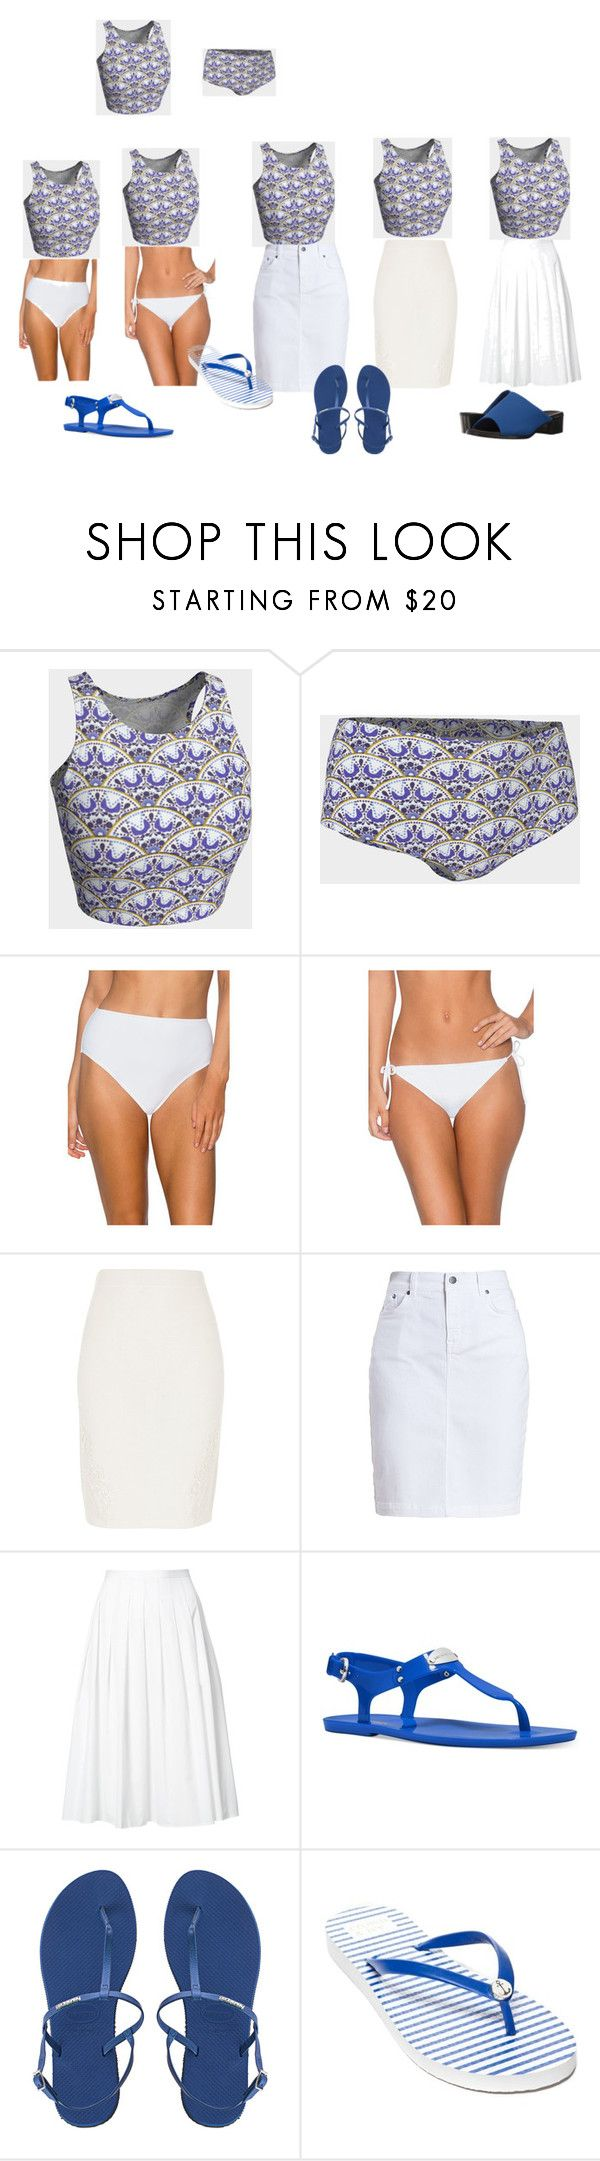 """""""One Crop Top..."""" by ginasphotocreations on Polyvore featuring Sunsets, River Island, Barbour, Vince, Michael Kors, Havaianas, Crown & Ivy and Munro American"""